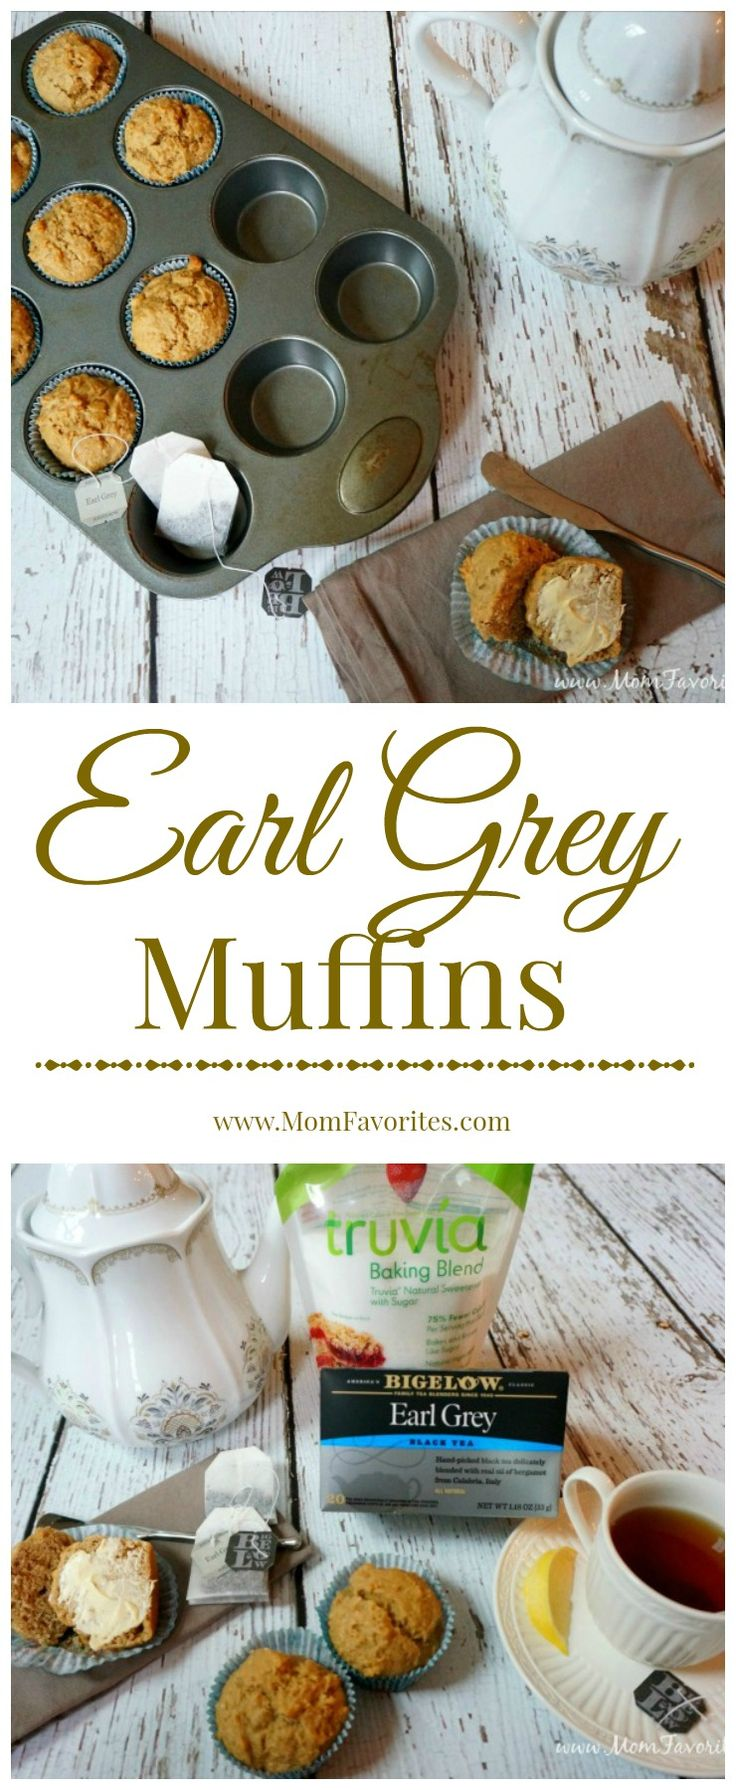 Hitting your afternoon slump? Try this recipe for Earl Grey Muffins. Made even lighter with Truvia Baking Blend! #ad #sweetwarmup